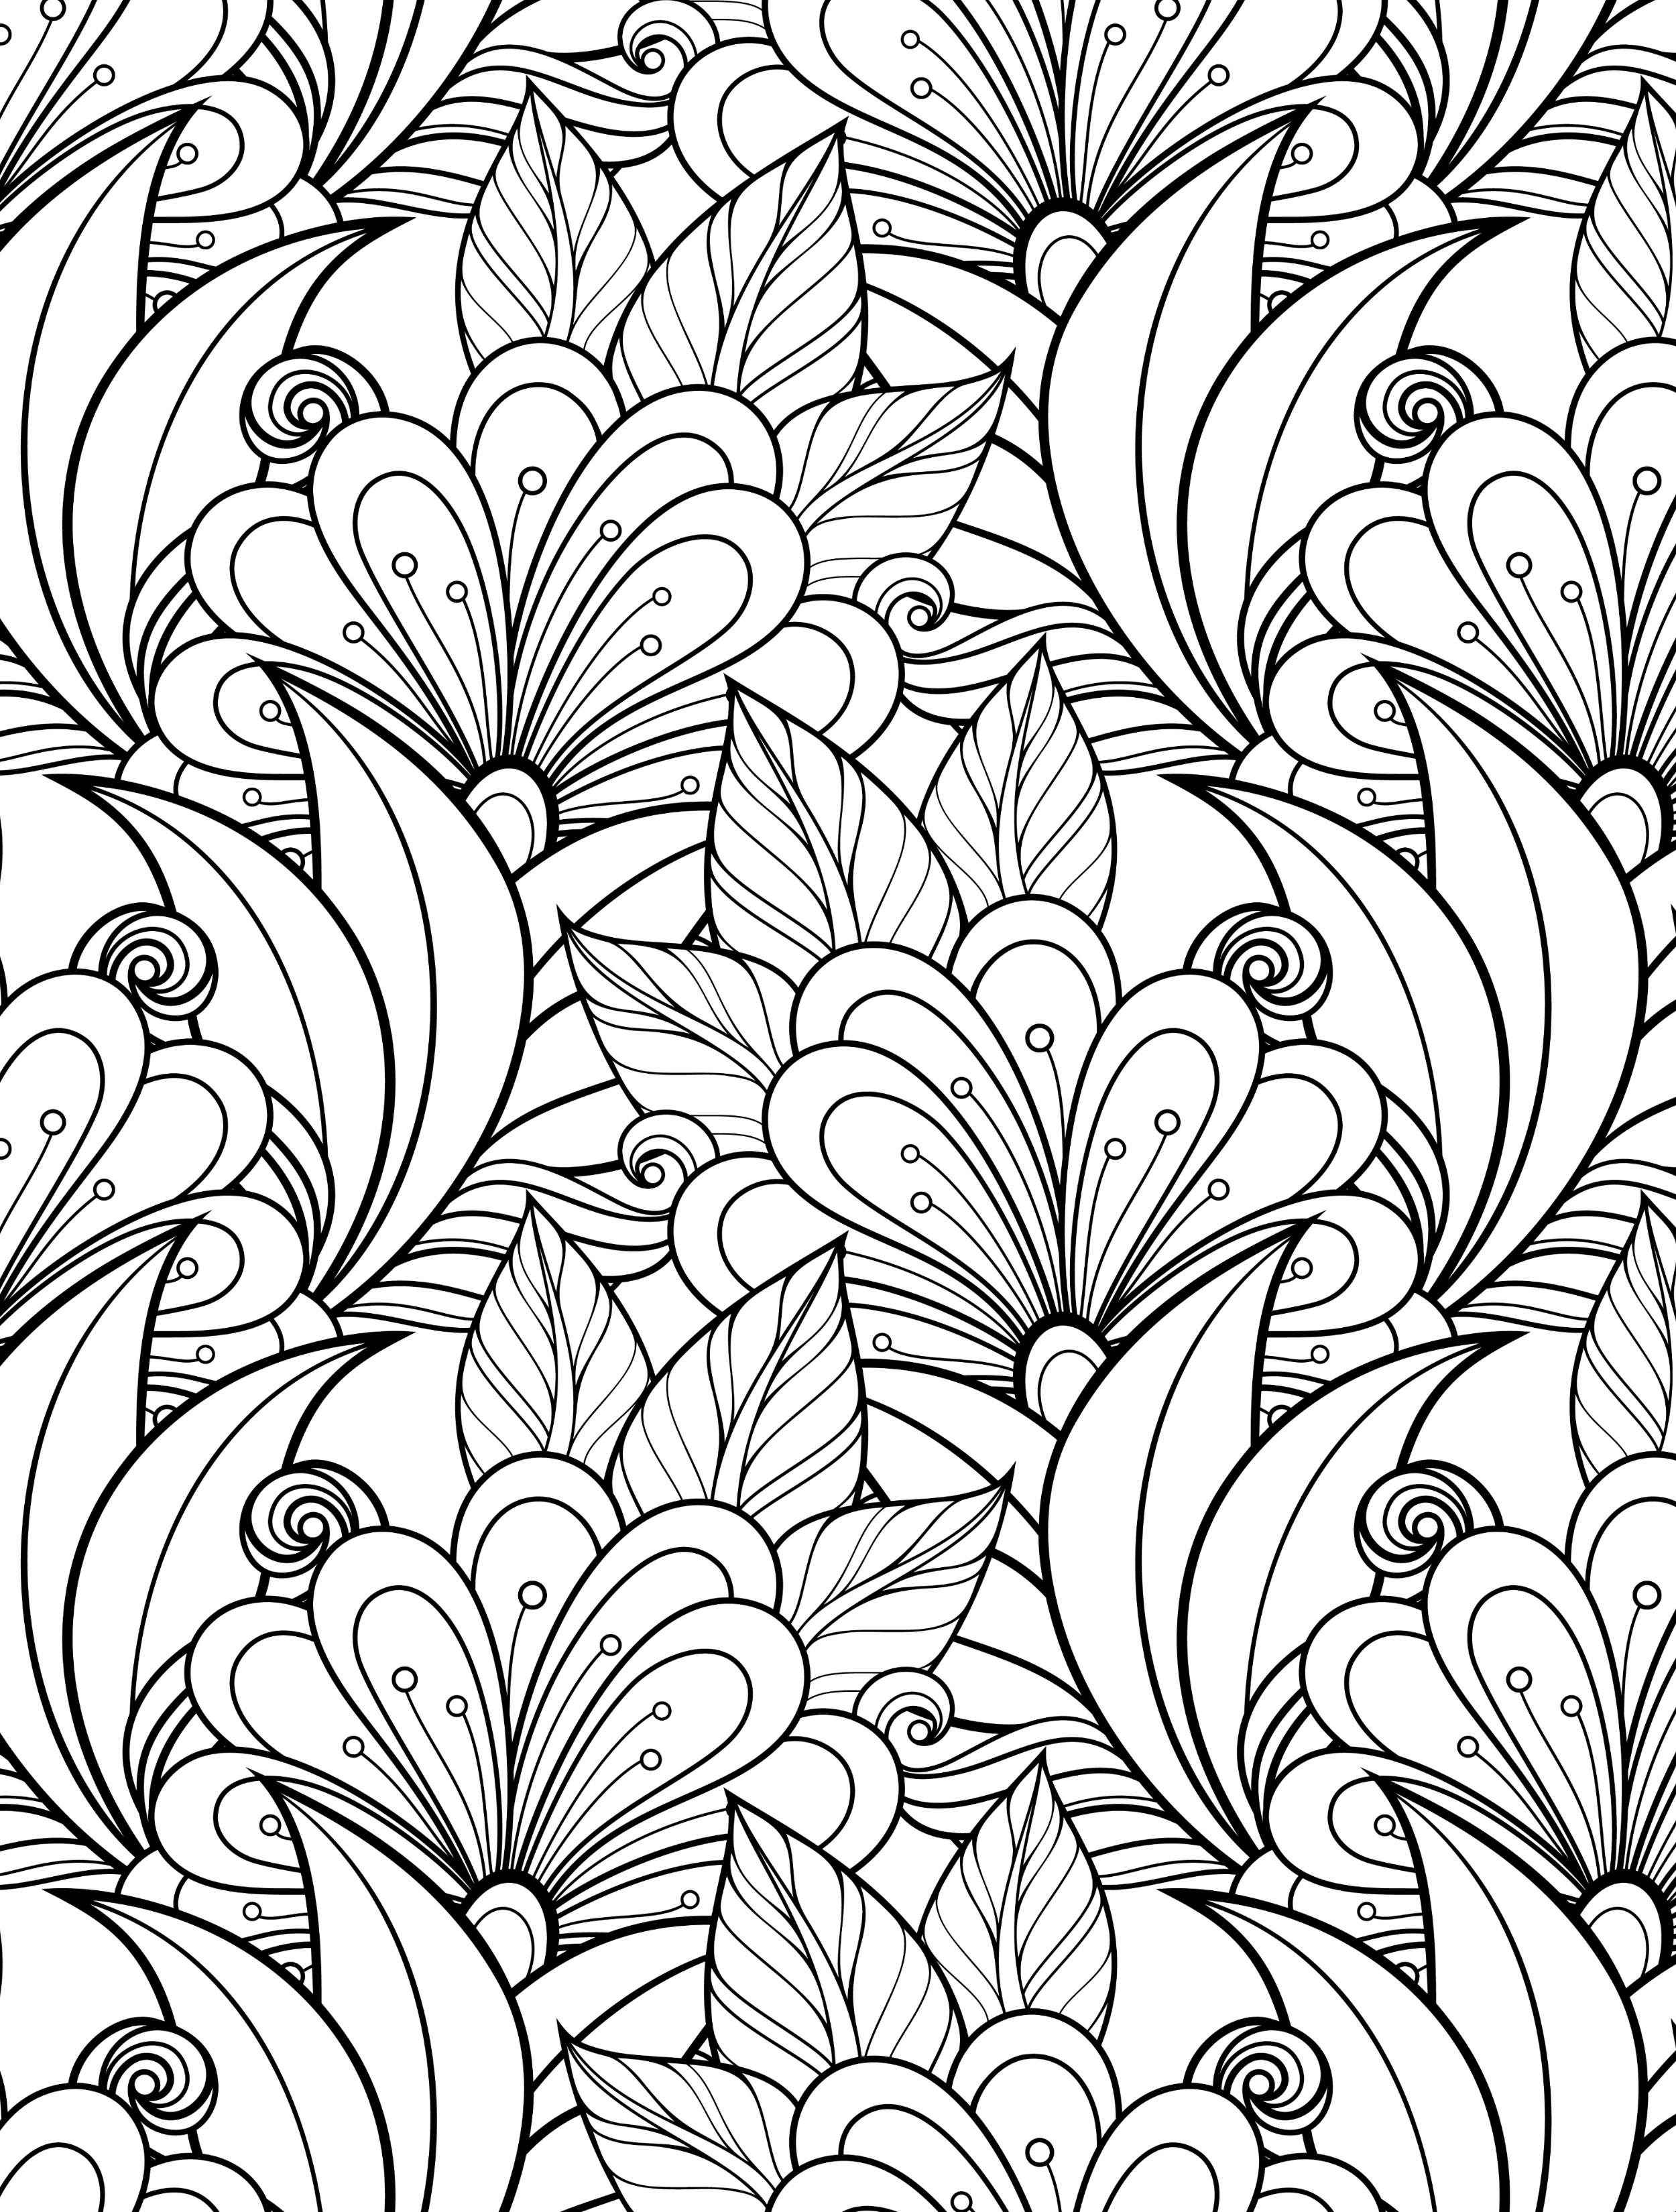 free coloring pages with designs intricate coloring pages for adults free printable designs with pages free coloring